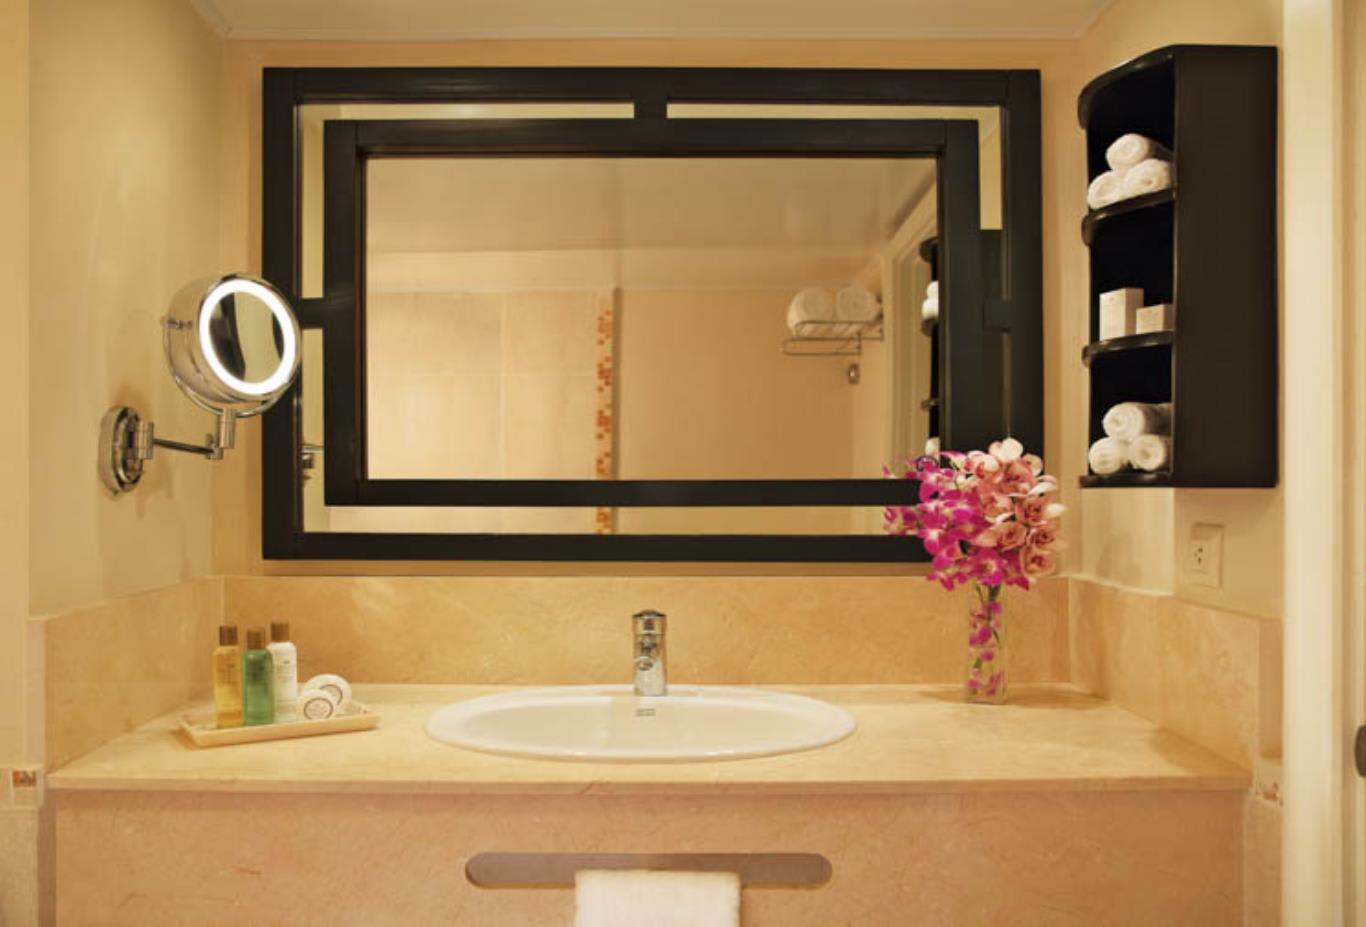 Preferred Club Deluxe Room bathroom